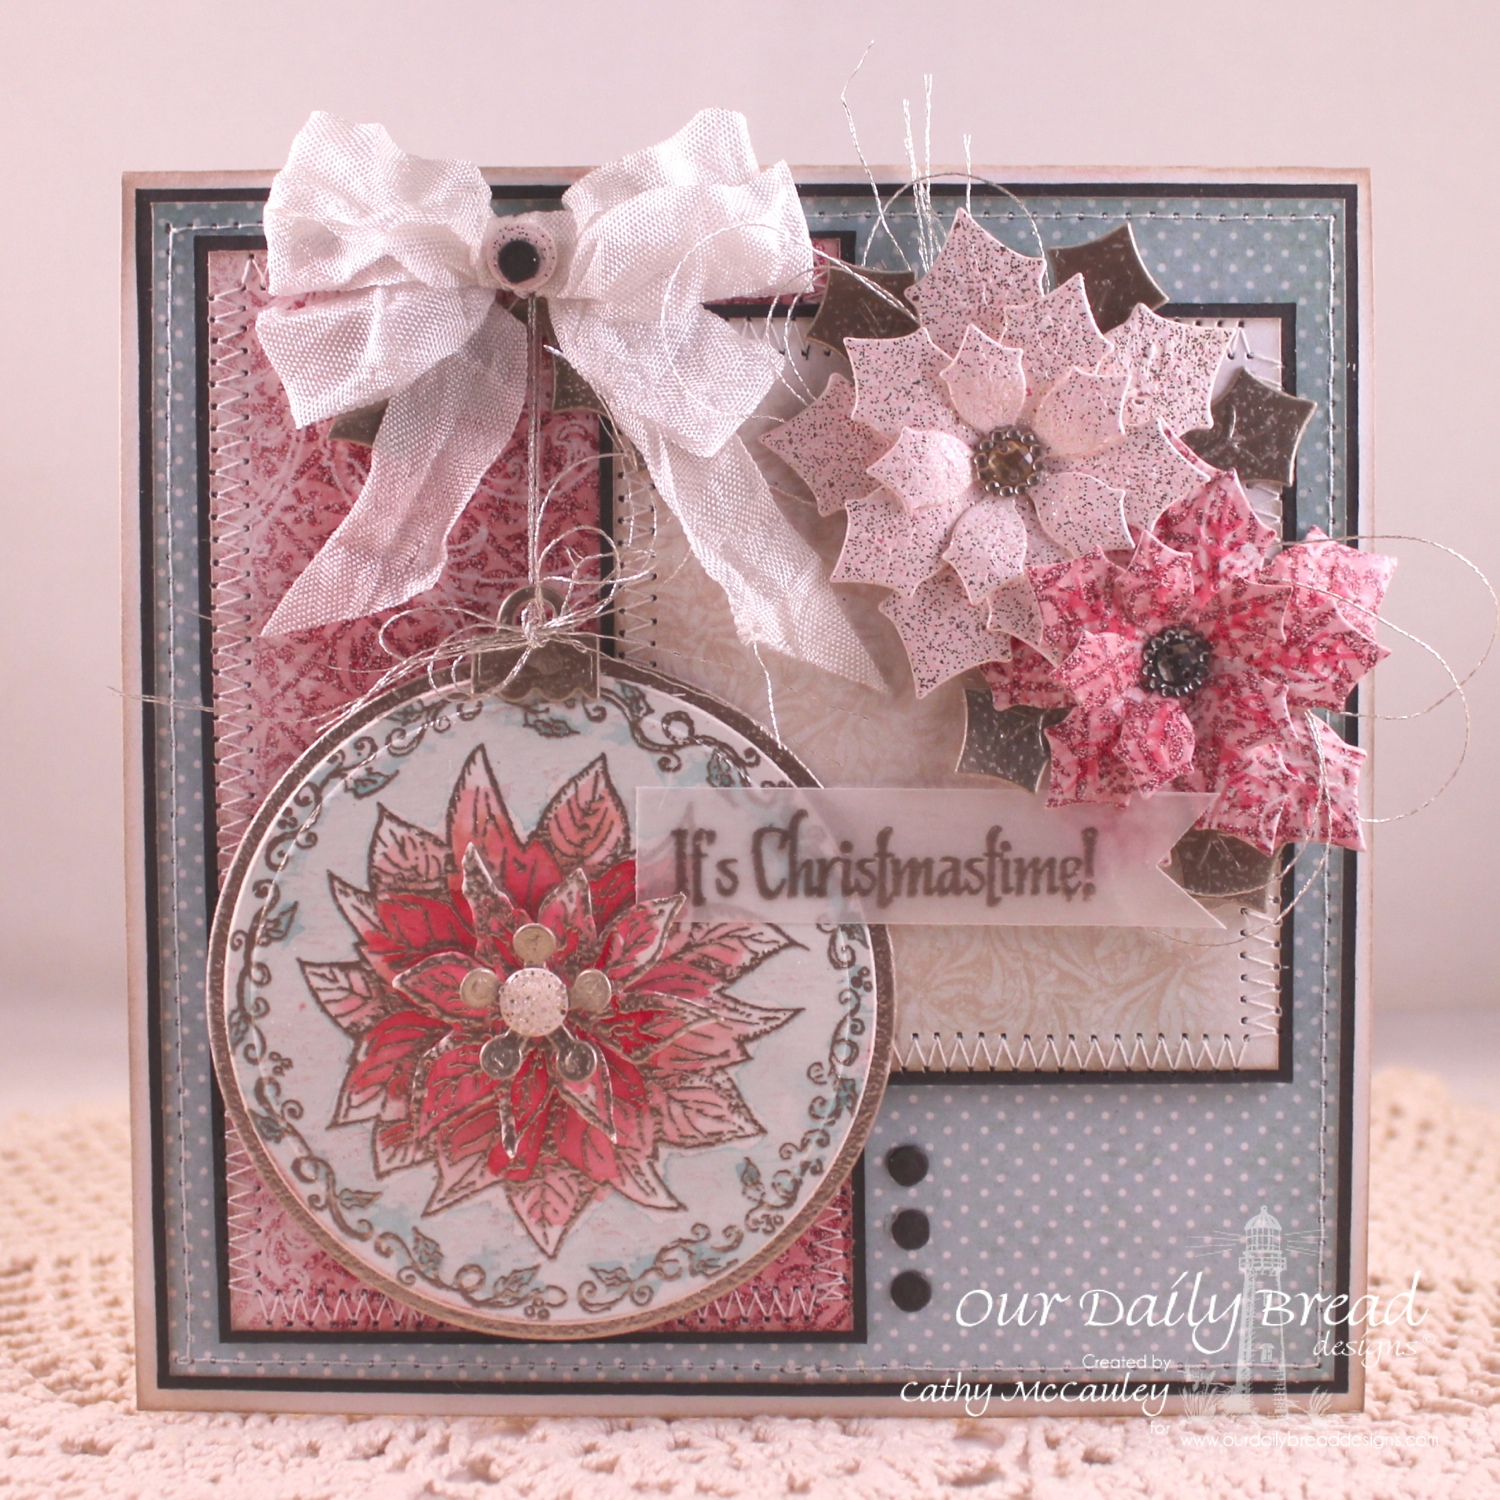 Stamps - Our Daily Bread Designs God's Timing, Poinsettia Ornament, ODBD Custom Peaceful Poinsettias Dies, ODBD Custom Circle Ornament Dies, ODBD Custom Matting Circles Die, ODBD Christmas Paper Collection 2014